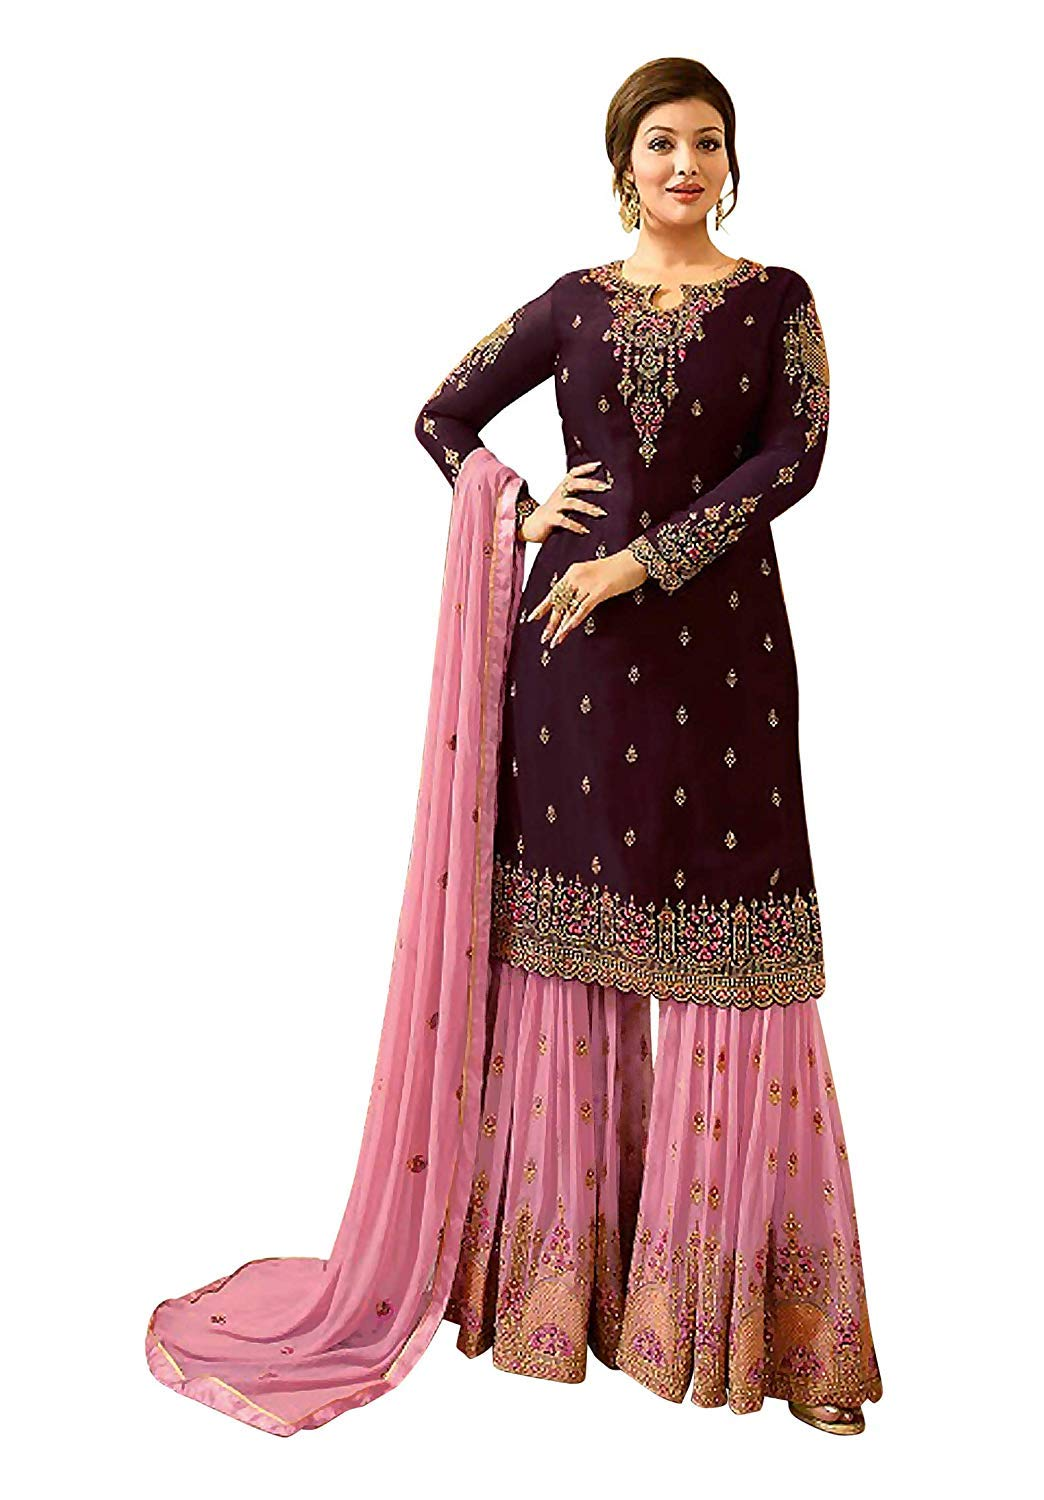 Women Faux Georgette Embroidered Indian Pakistani Sharara Style Salwar Suit (X-Small, Purple)